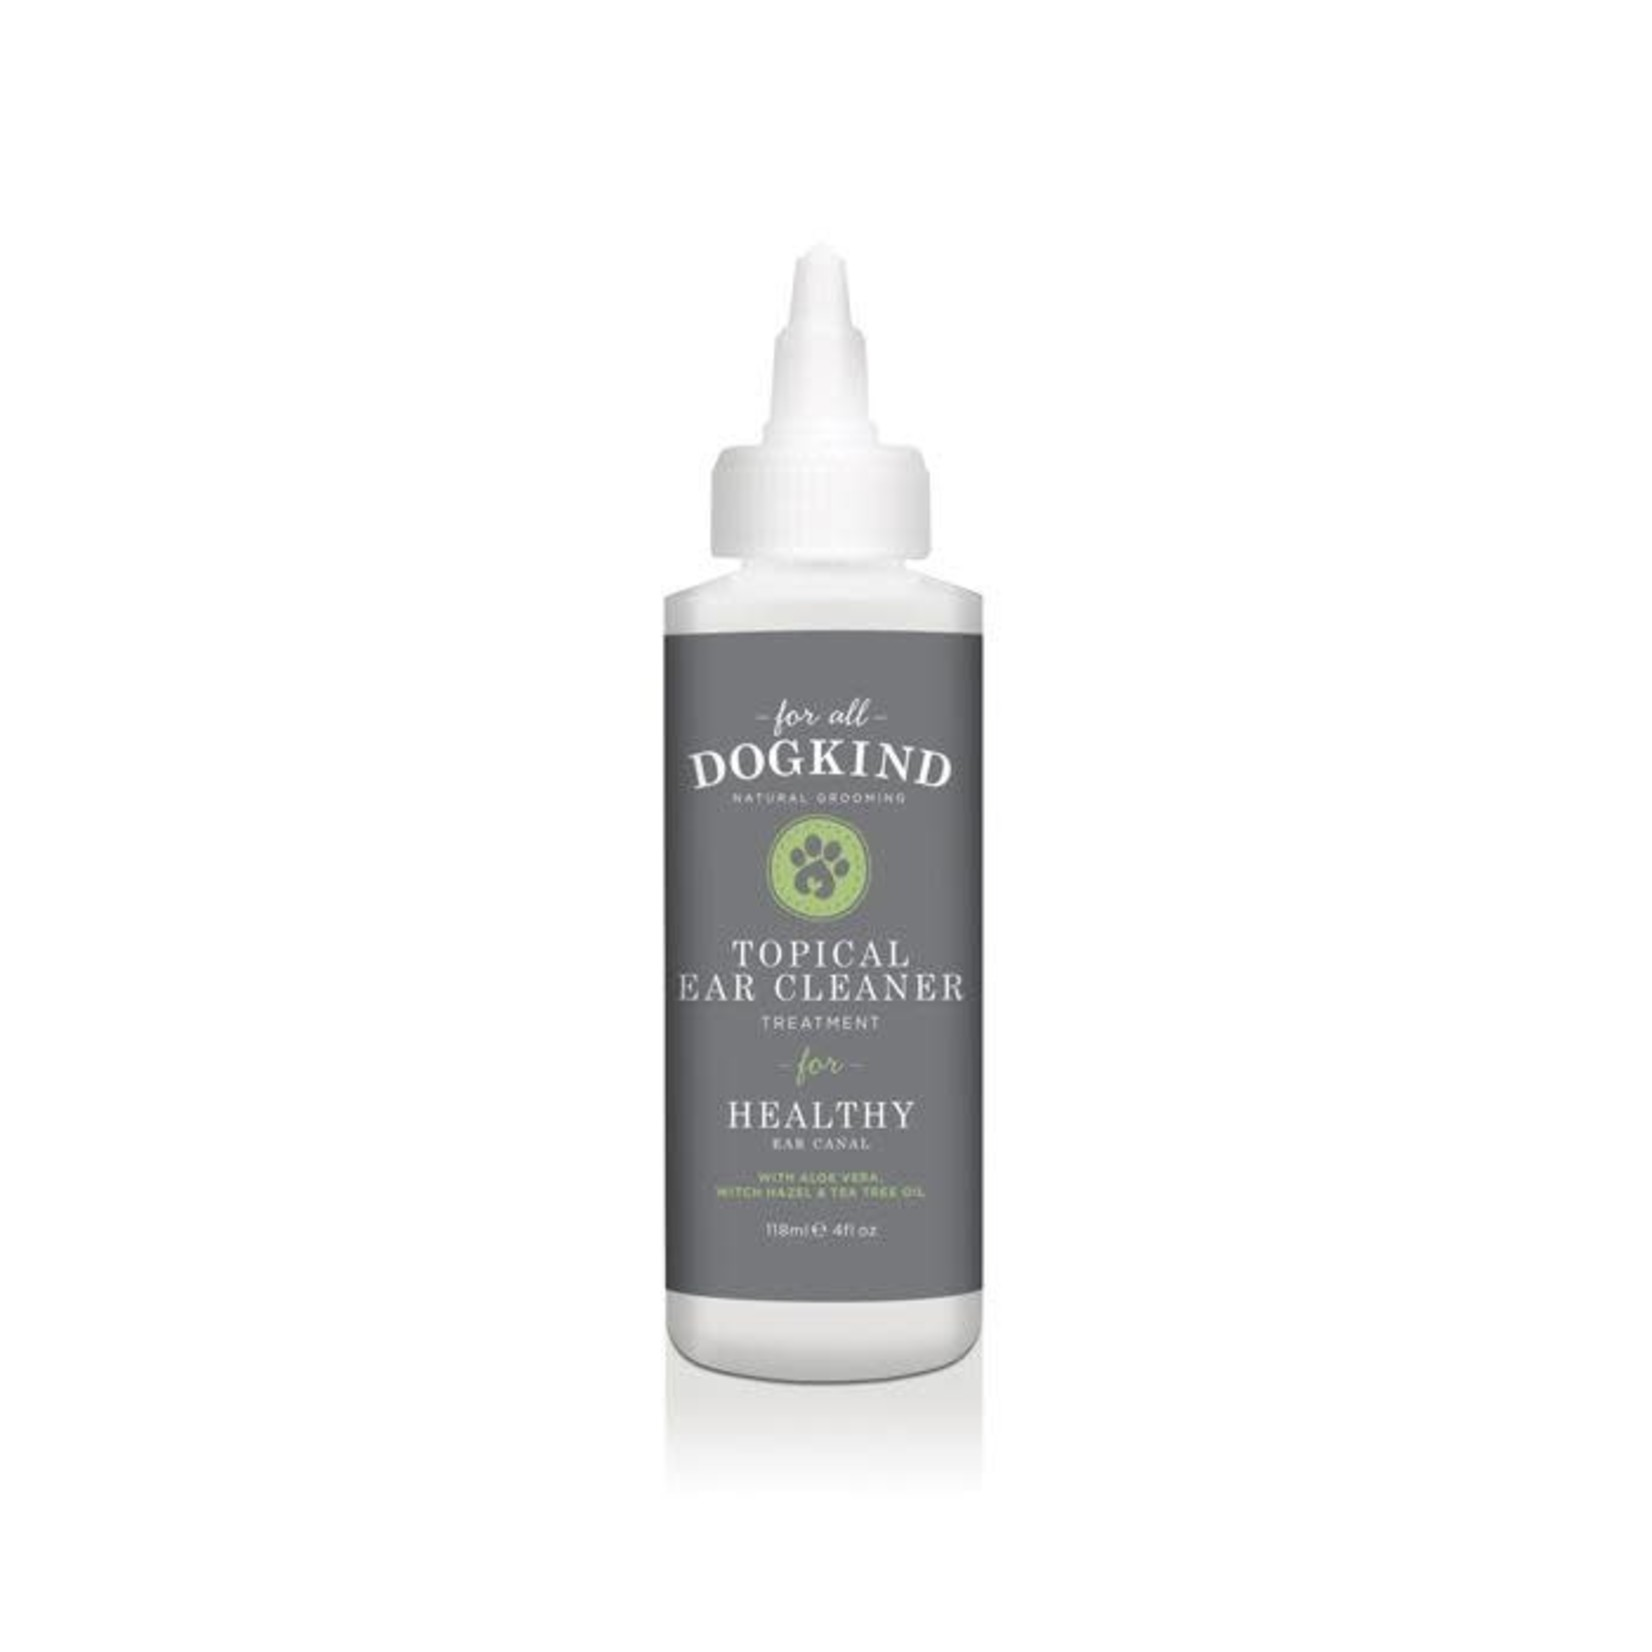 For All DogKind Topical Dog Ear Cleaner for Healthy Ear Canal, 118ml